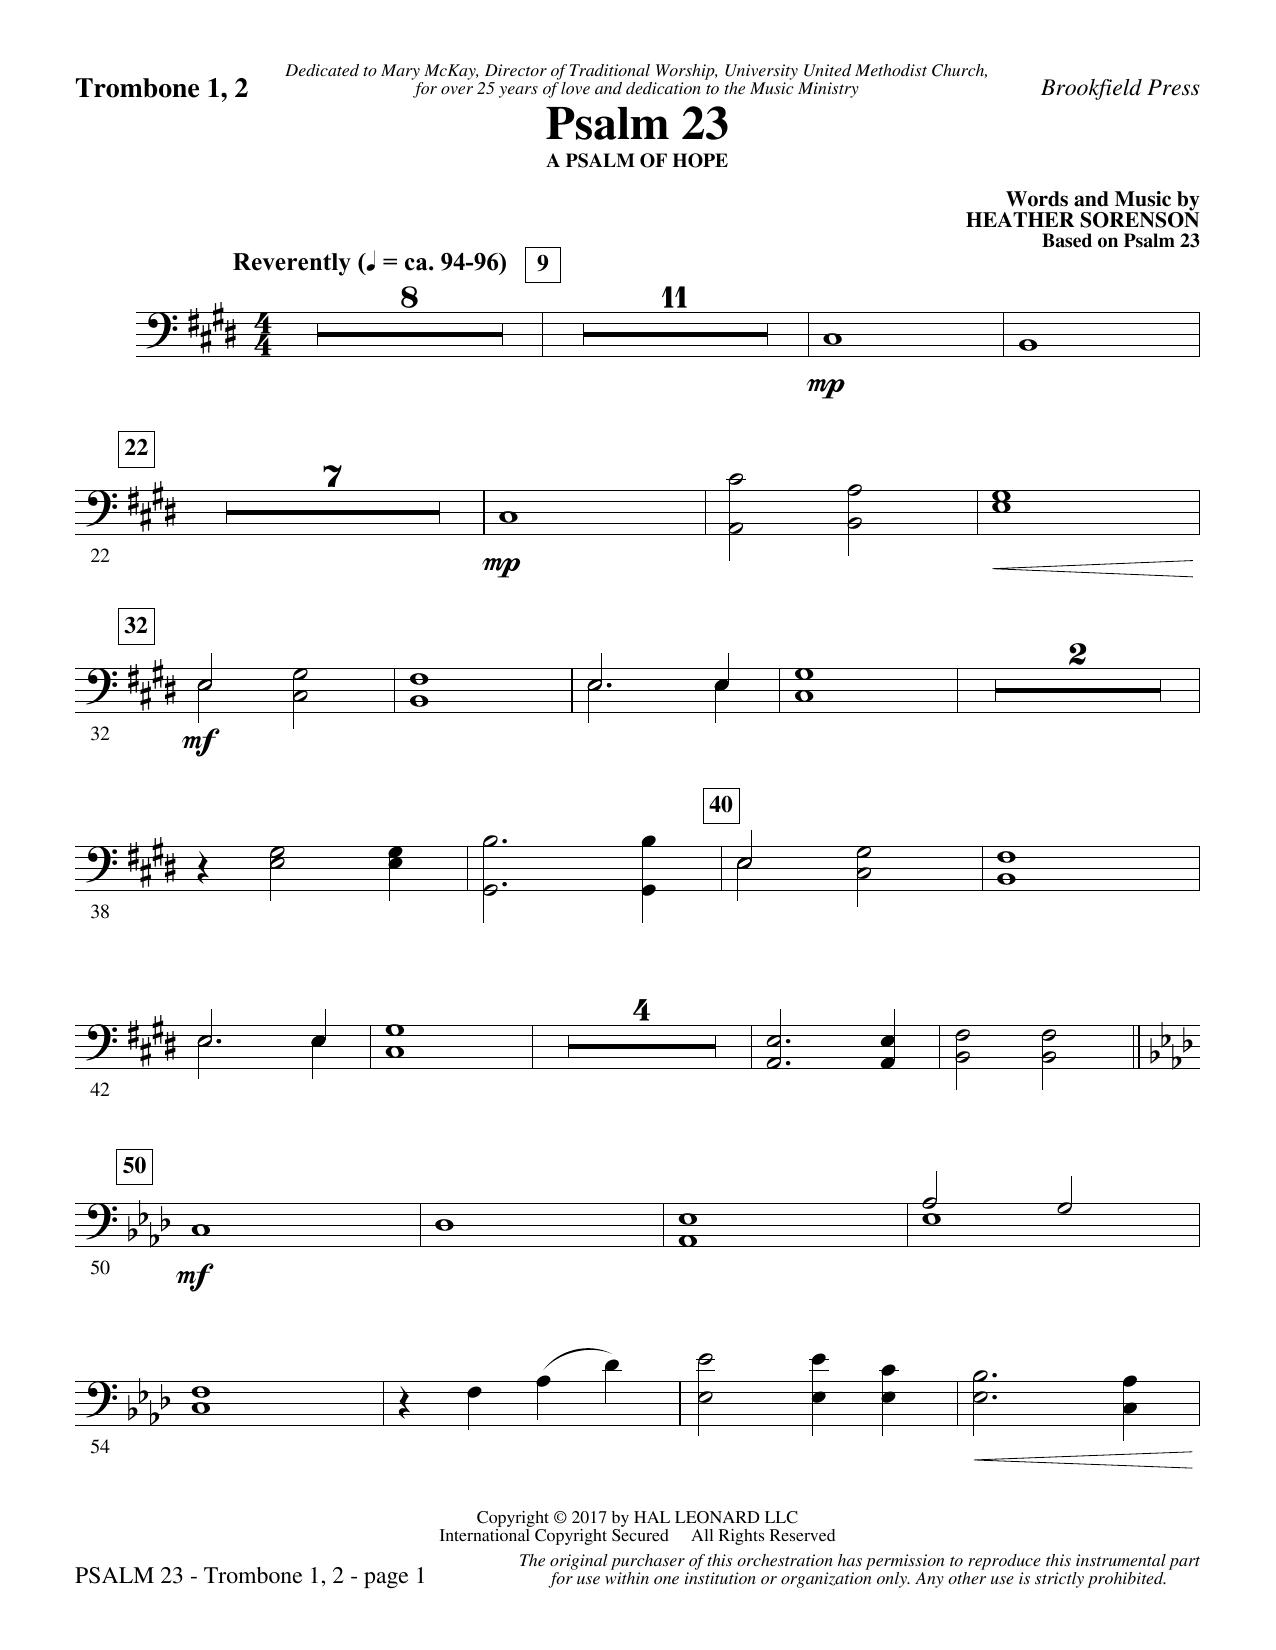 Heather Sorenson Psalm 23 - Trombone 1 & 2 sheet music notes and chords. Download Printable PDF.